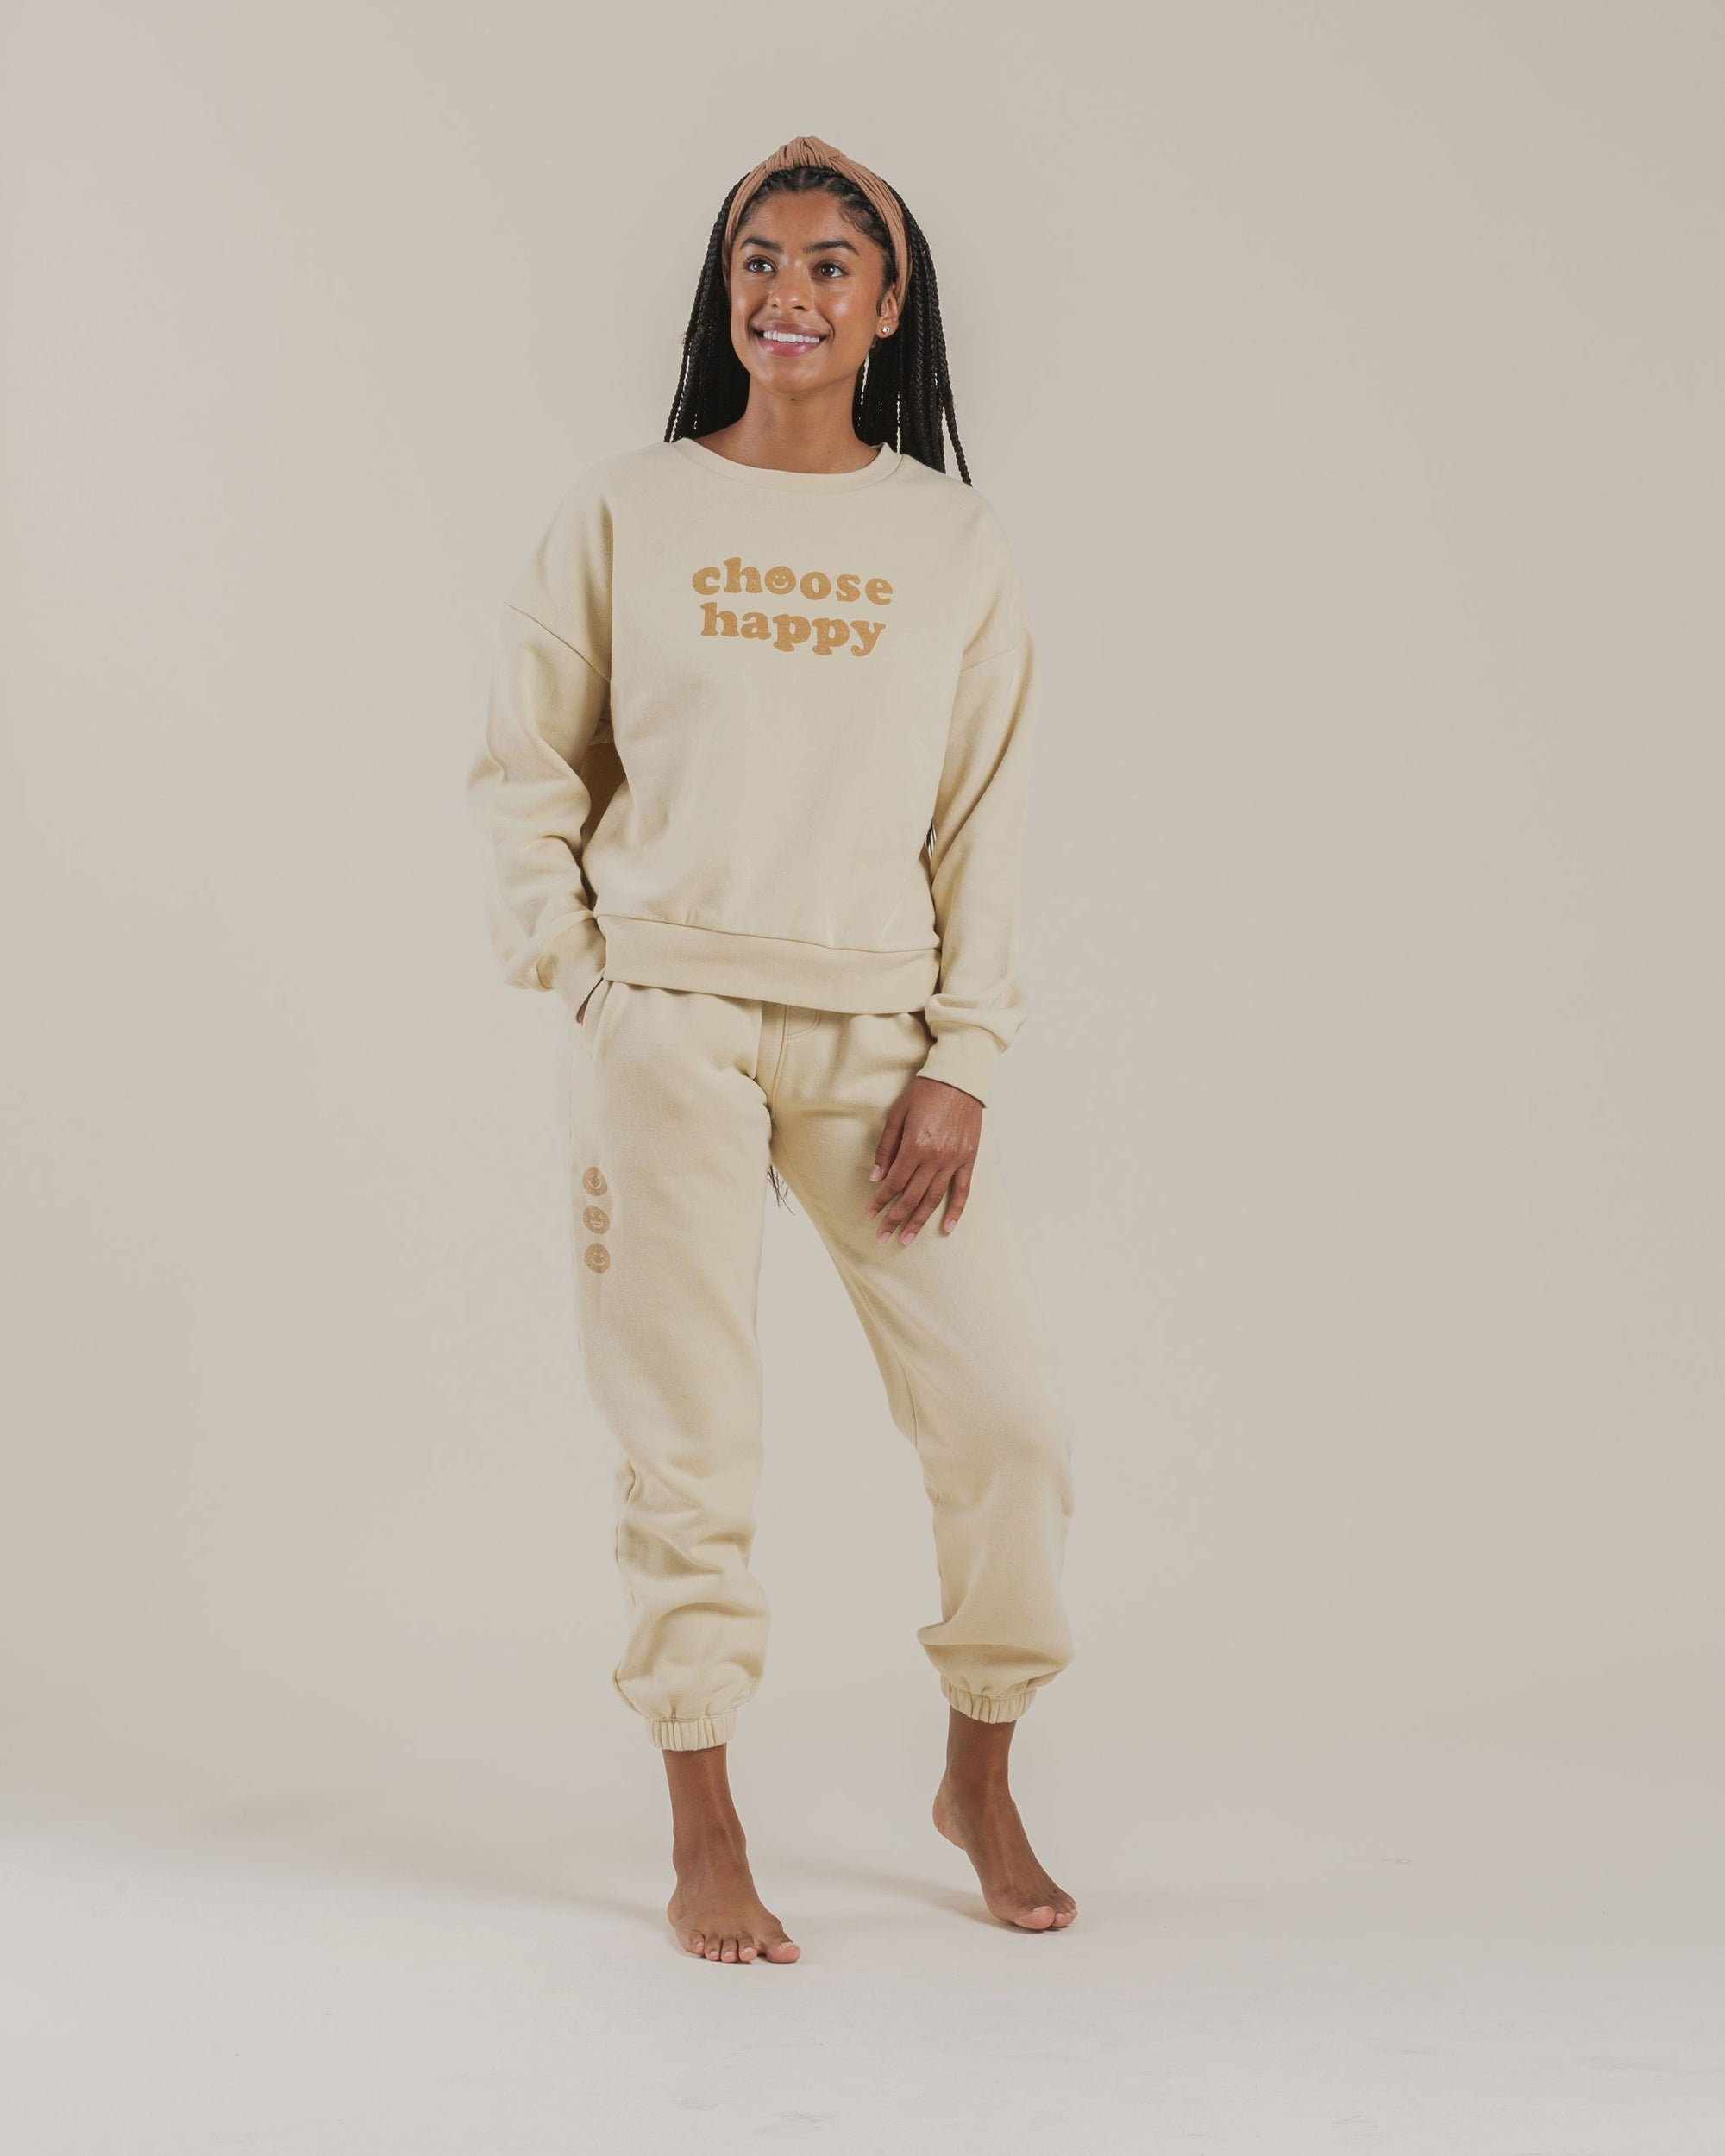 WOMEN'S CREWNECK PULLOVER / CHOOSE HAPPY